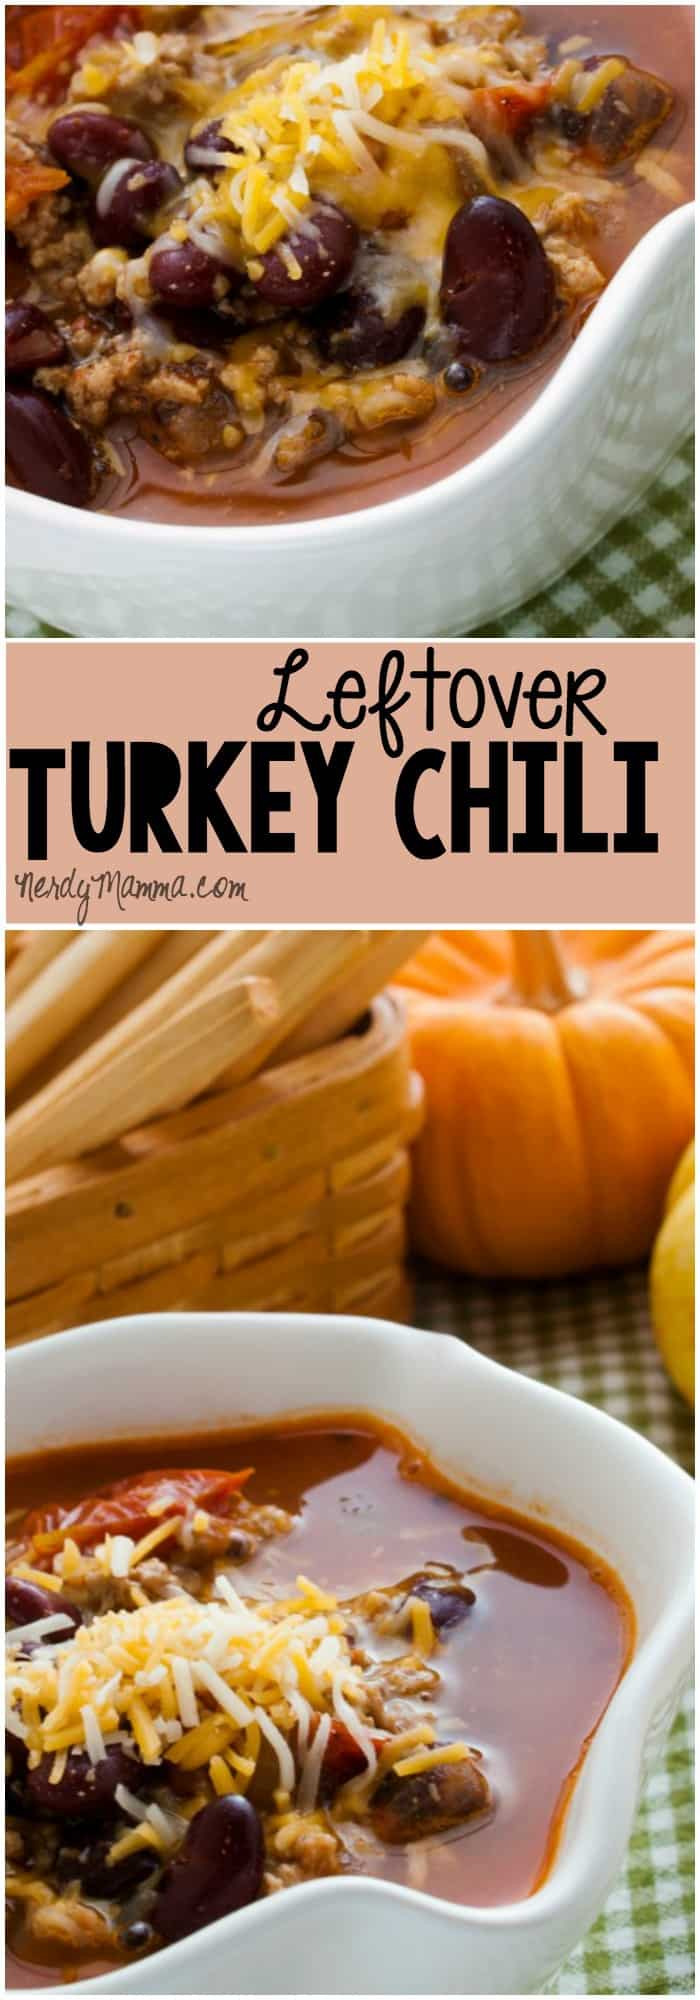 This recipe for leftover turkey chili is so awesomely yummy. Easy, fast and uses a lot of turkey, it's kinda perfect for the day after Thanksgiving.